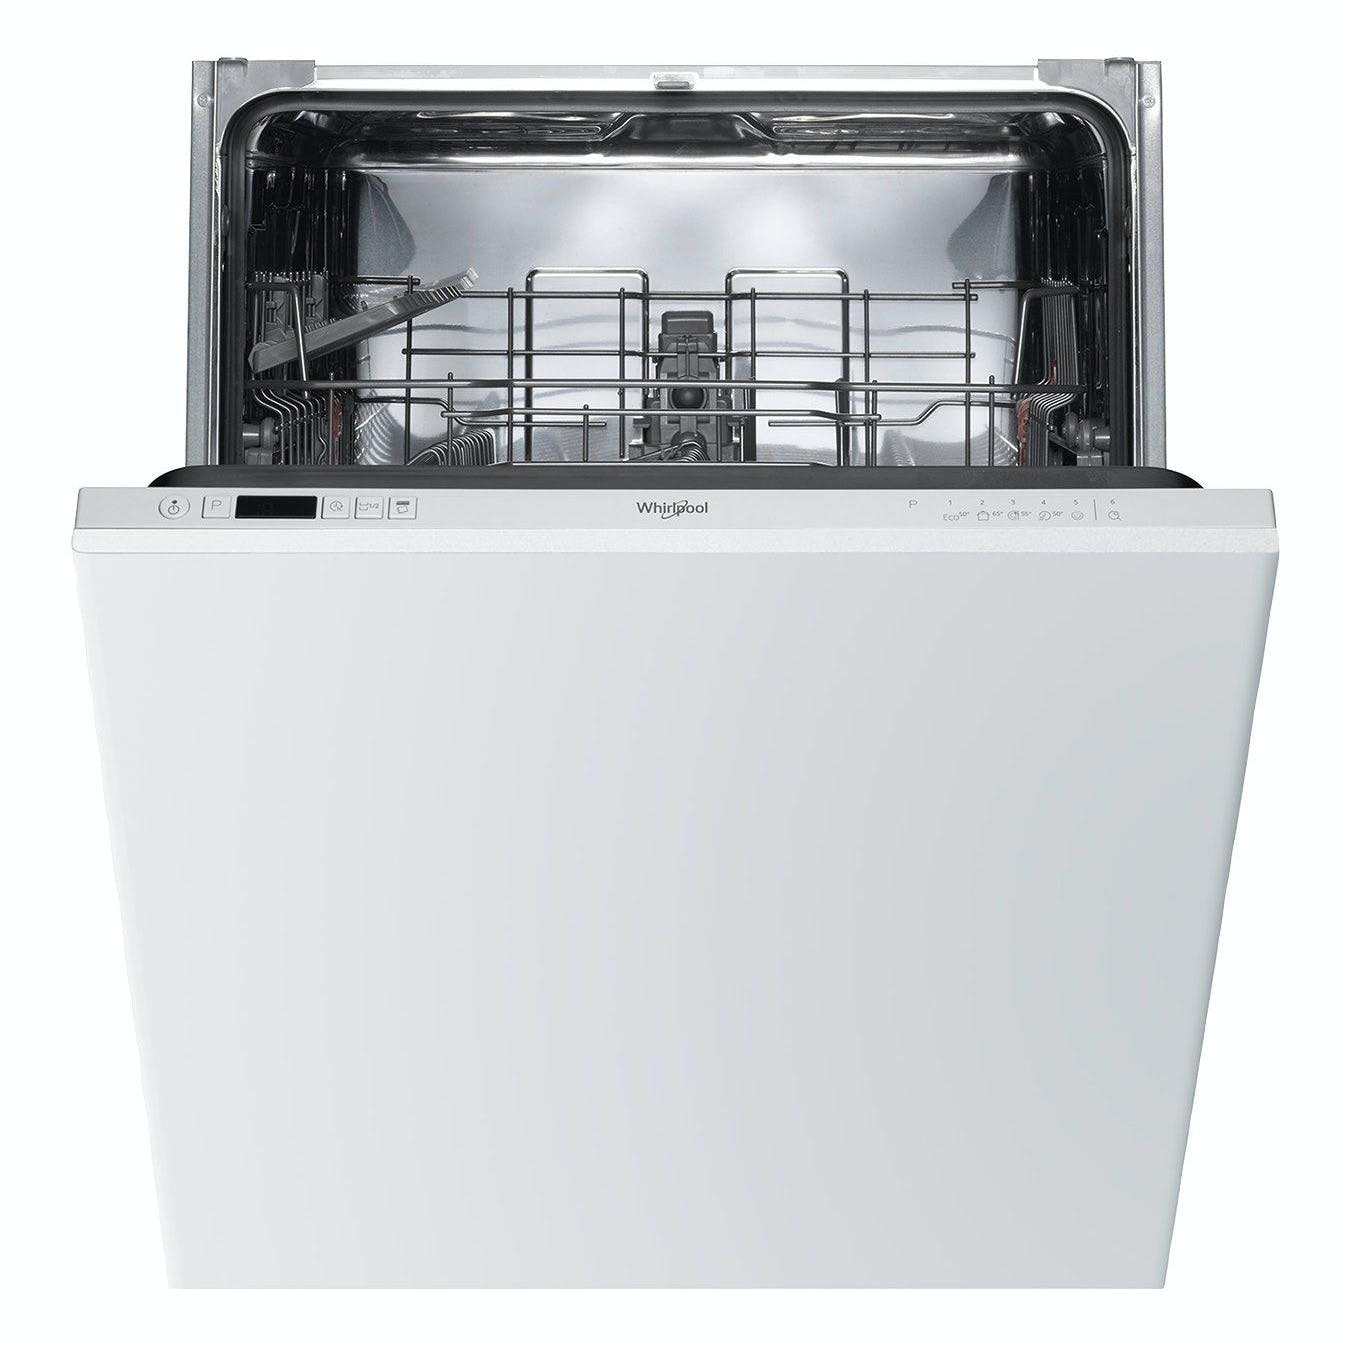 Whirlpool WIC3B19UK